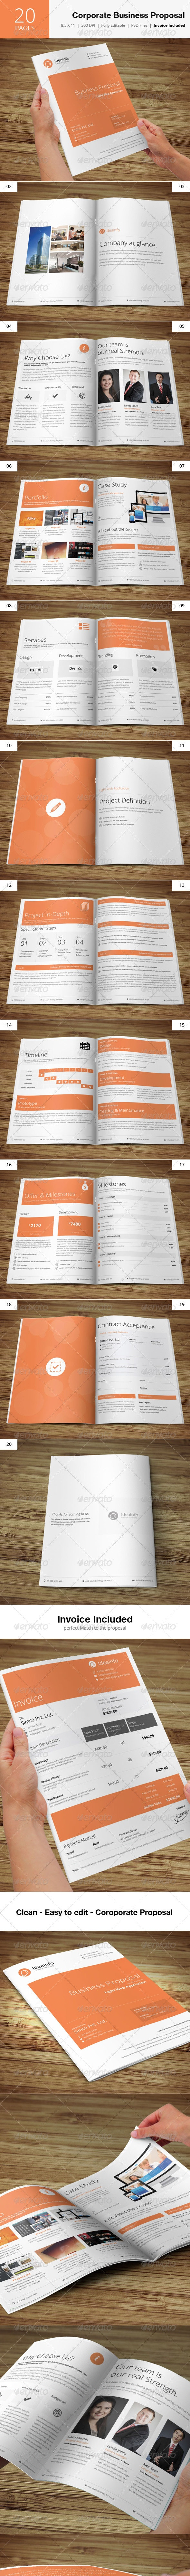 Corporate Business Proposal - Proposals & Invoices Stationery